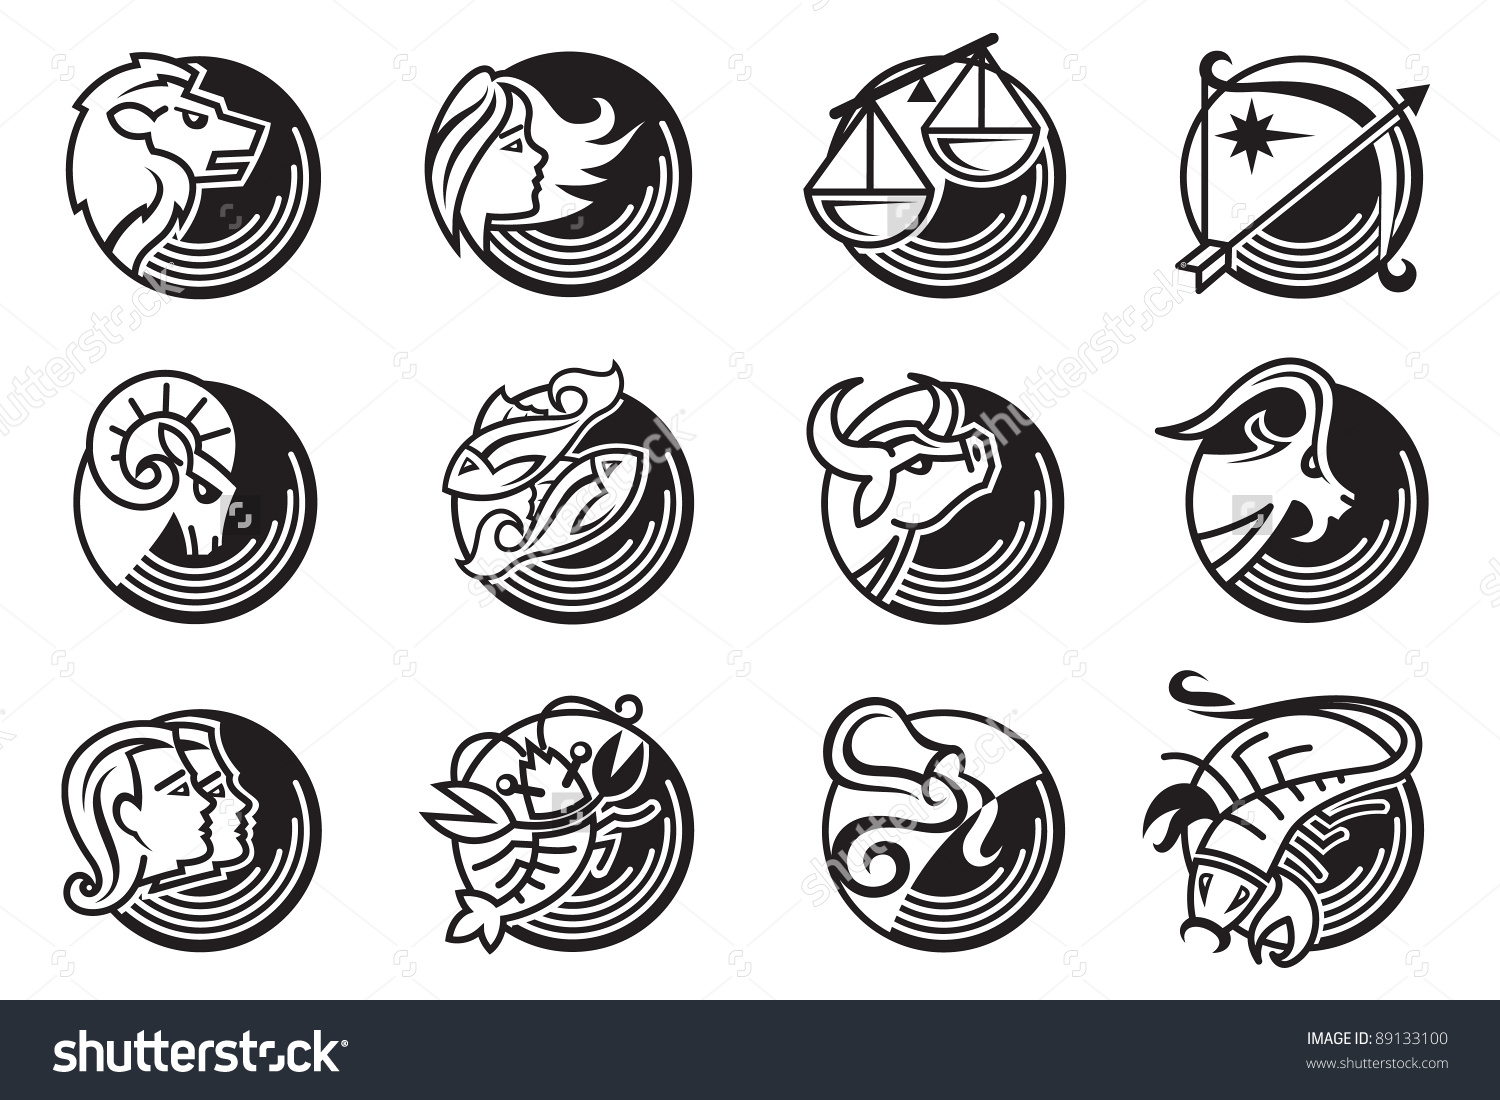 astrology signs clipart